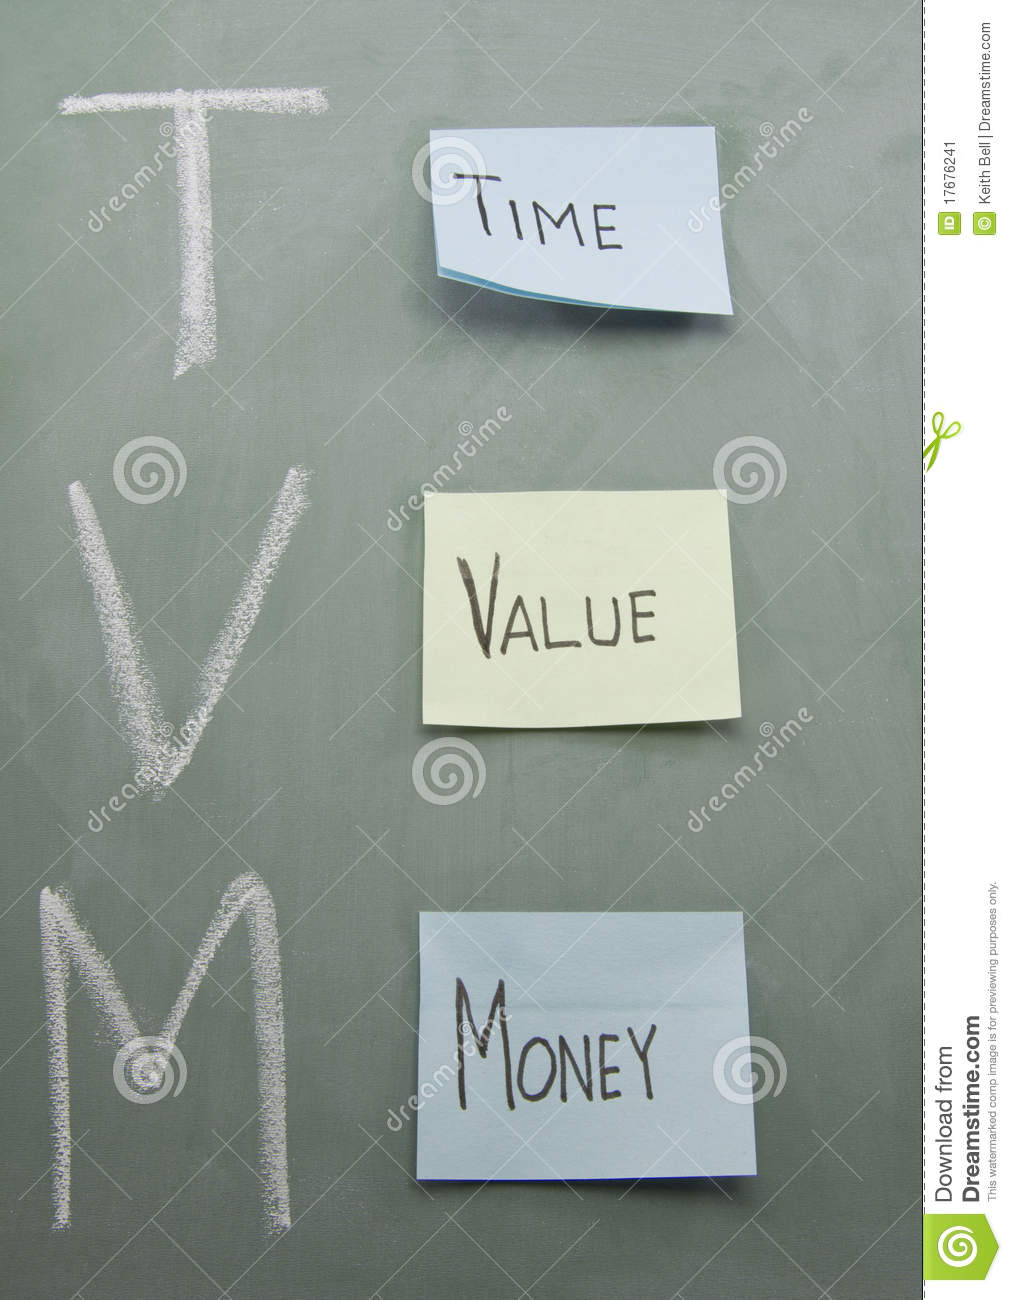 time value money Why when you get your money matters as much as how much money present and future value also discussed created by sal khan watch the next lesson: https://w.